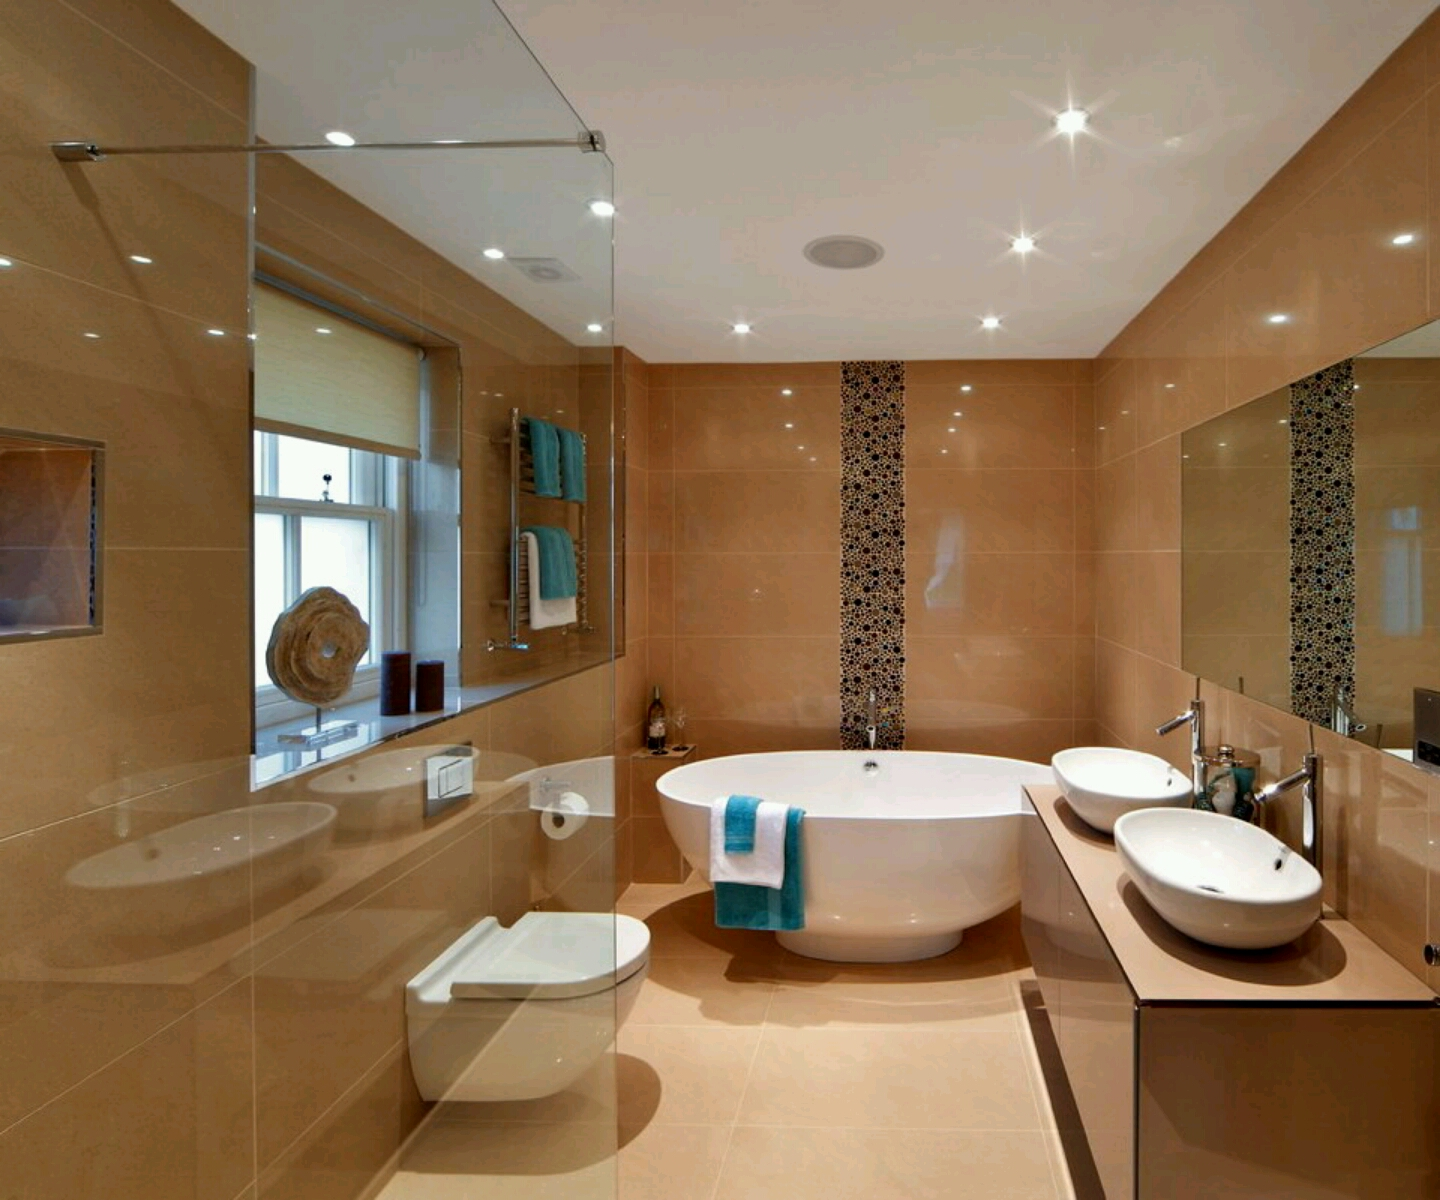 New home designs latest luxury modern bathrooms designs for New bathroom ideas images